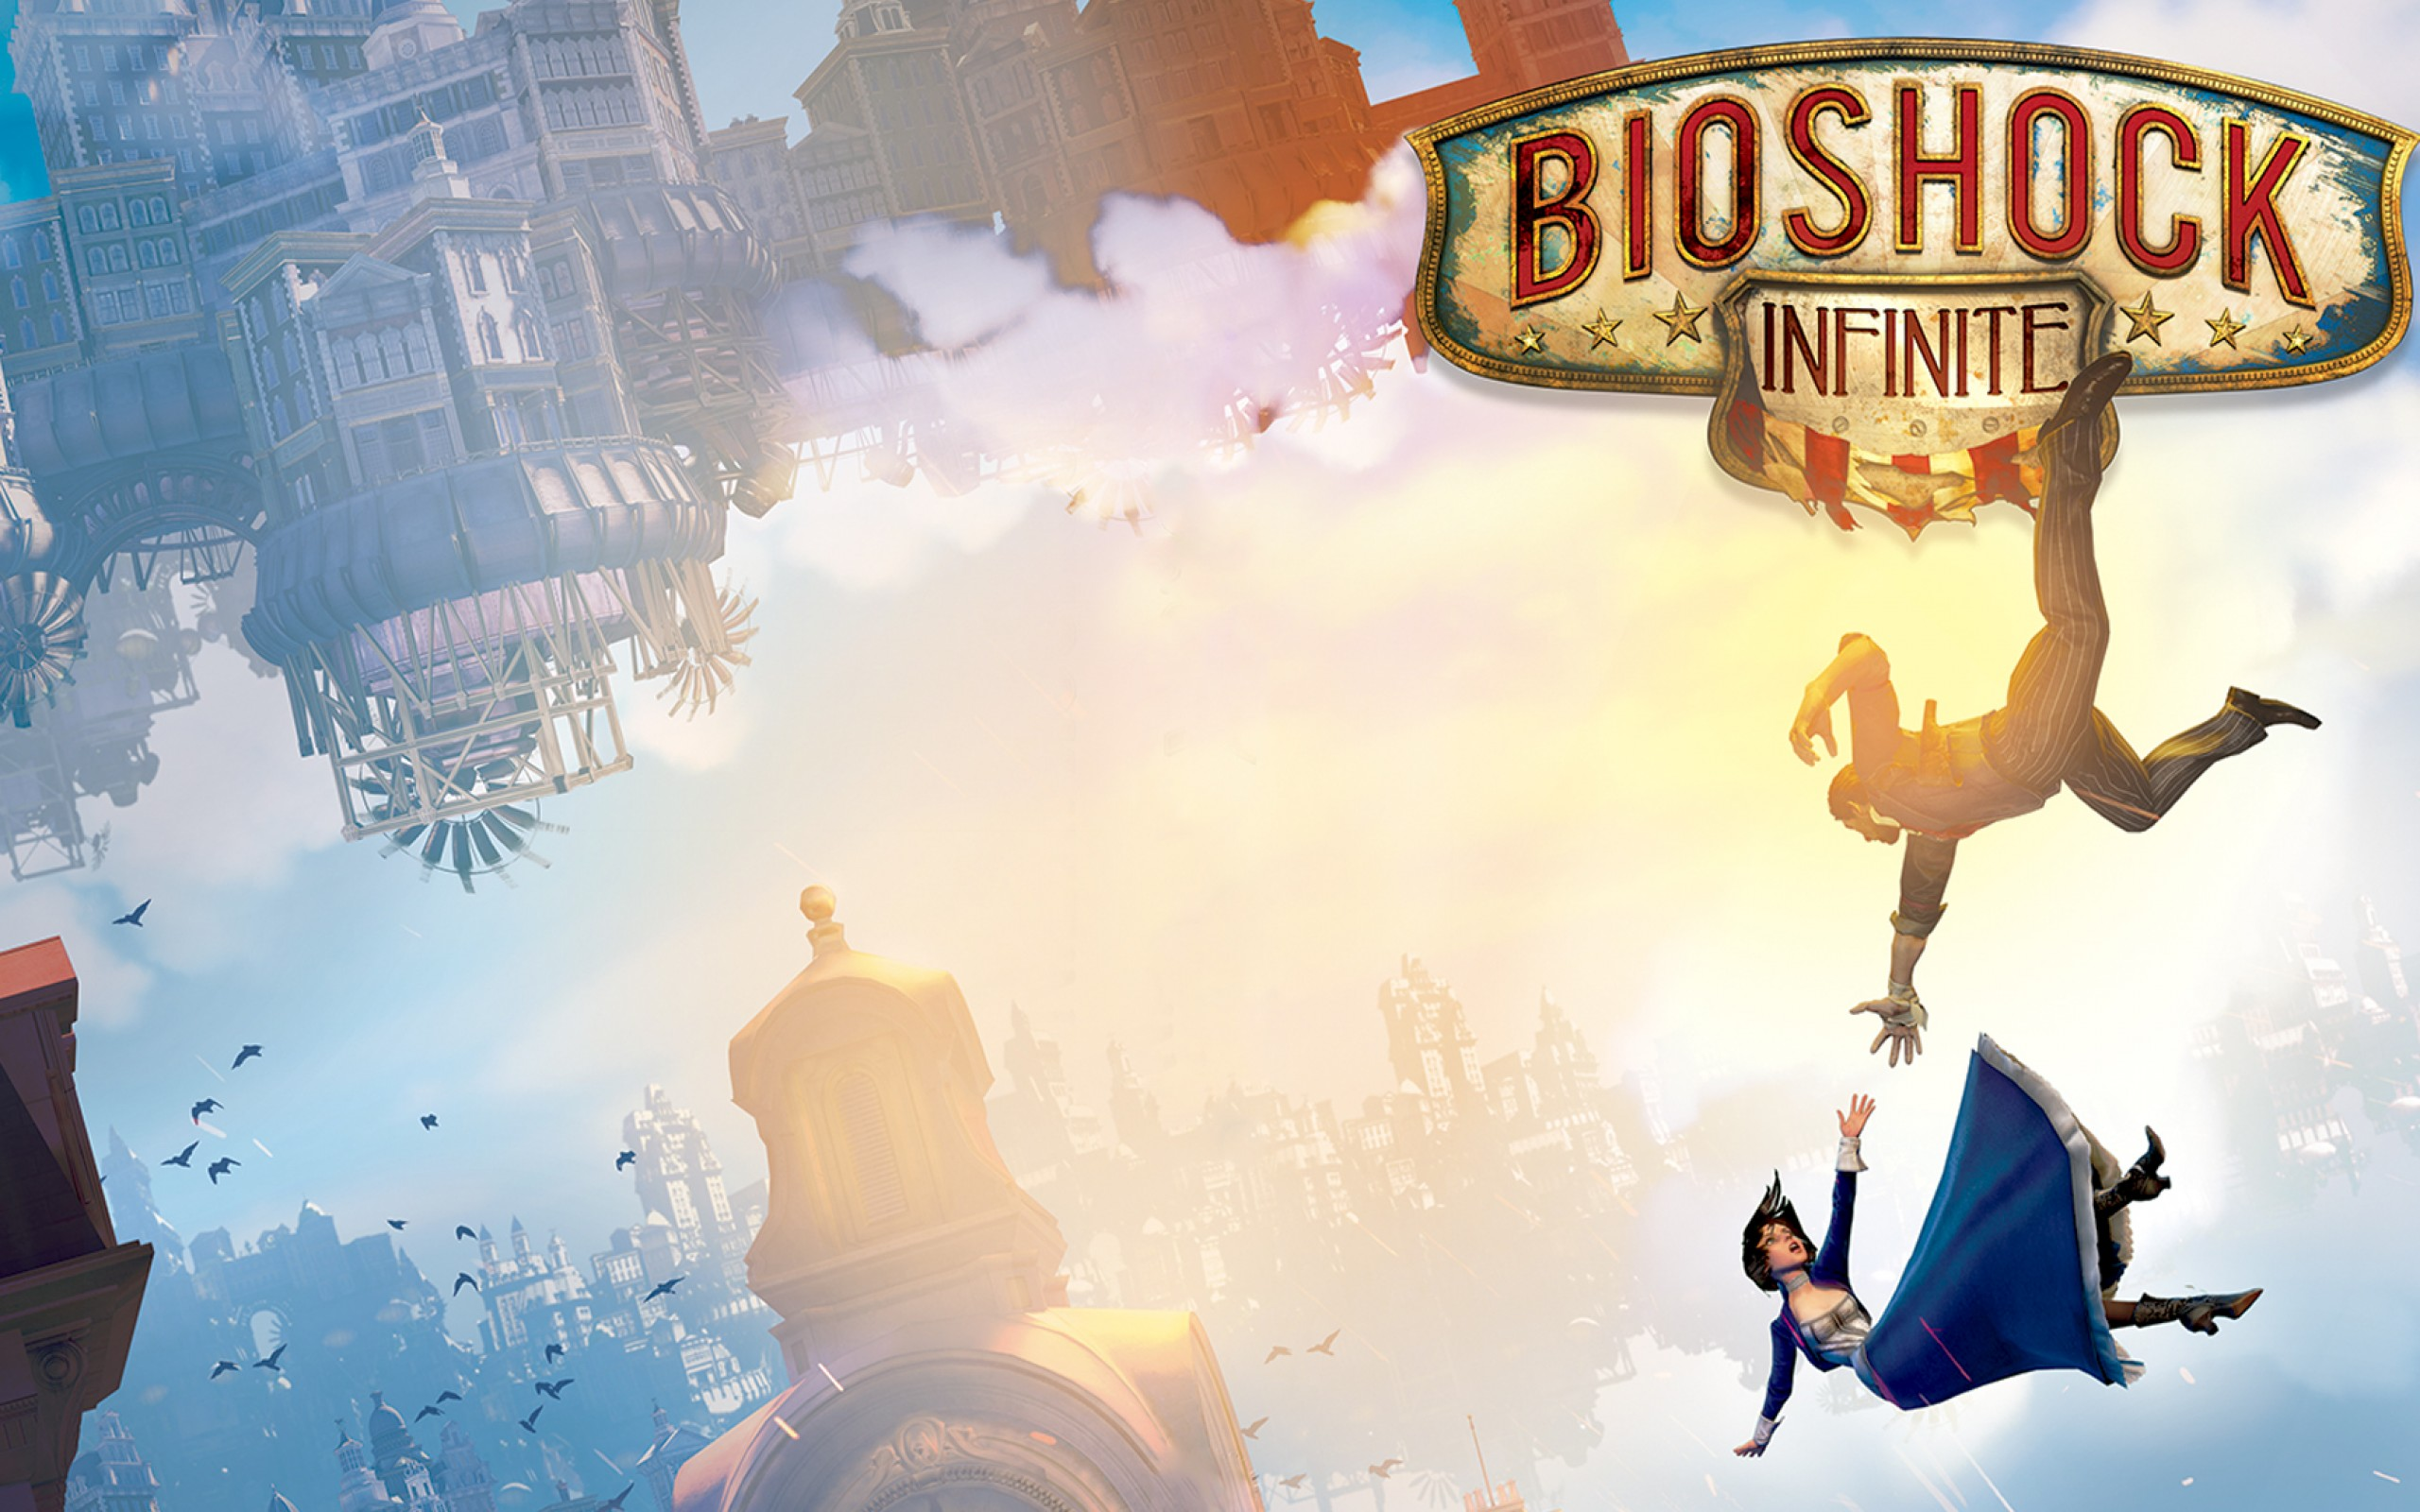 Bioshock Infinite Wallpaper Falling HD Wallpaper Background Images 2560x1600